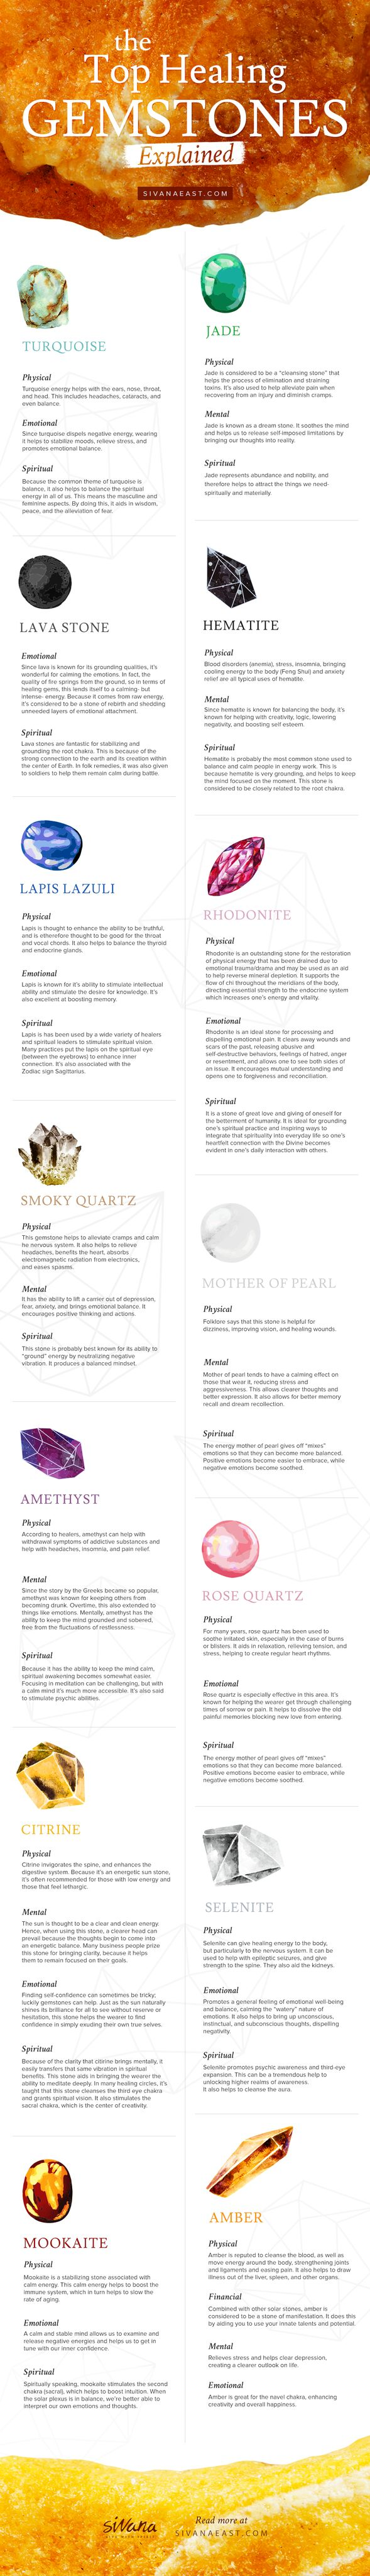 Pure Reiki Healing - un.png (589×4096) ecommerce.jrstudi... - Amazing Secret Discovered by Middle-Aged Construction Worker Releases Healing Energy Through The Palm of His Hands... Cures Diseases and Ailments Just By Touching Them... And Even Heals People Over Vast Distances...